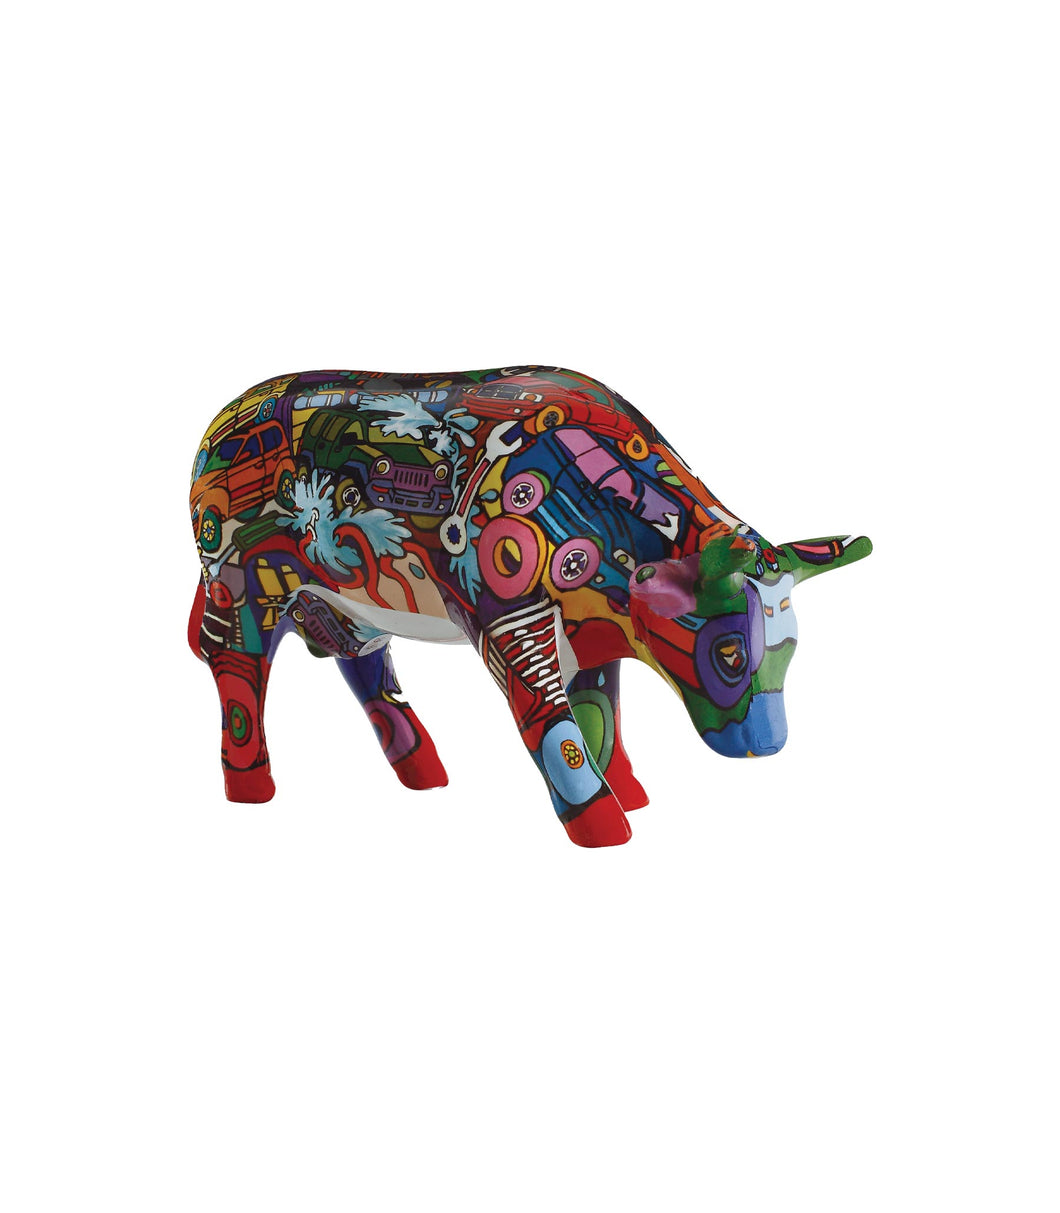 brenners-mooters-vache-cow-parade-moyen-modele